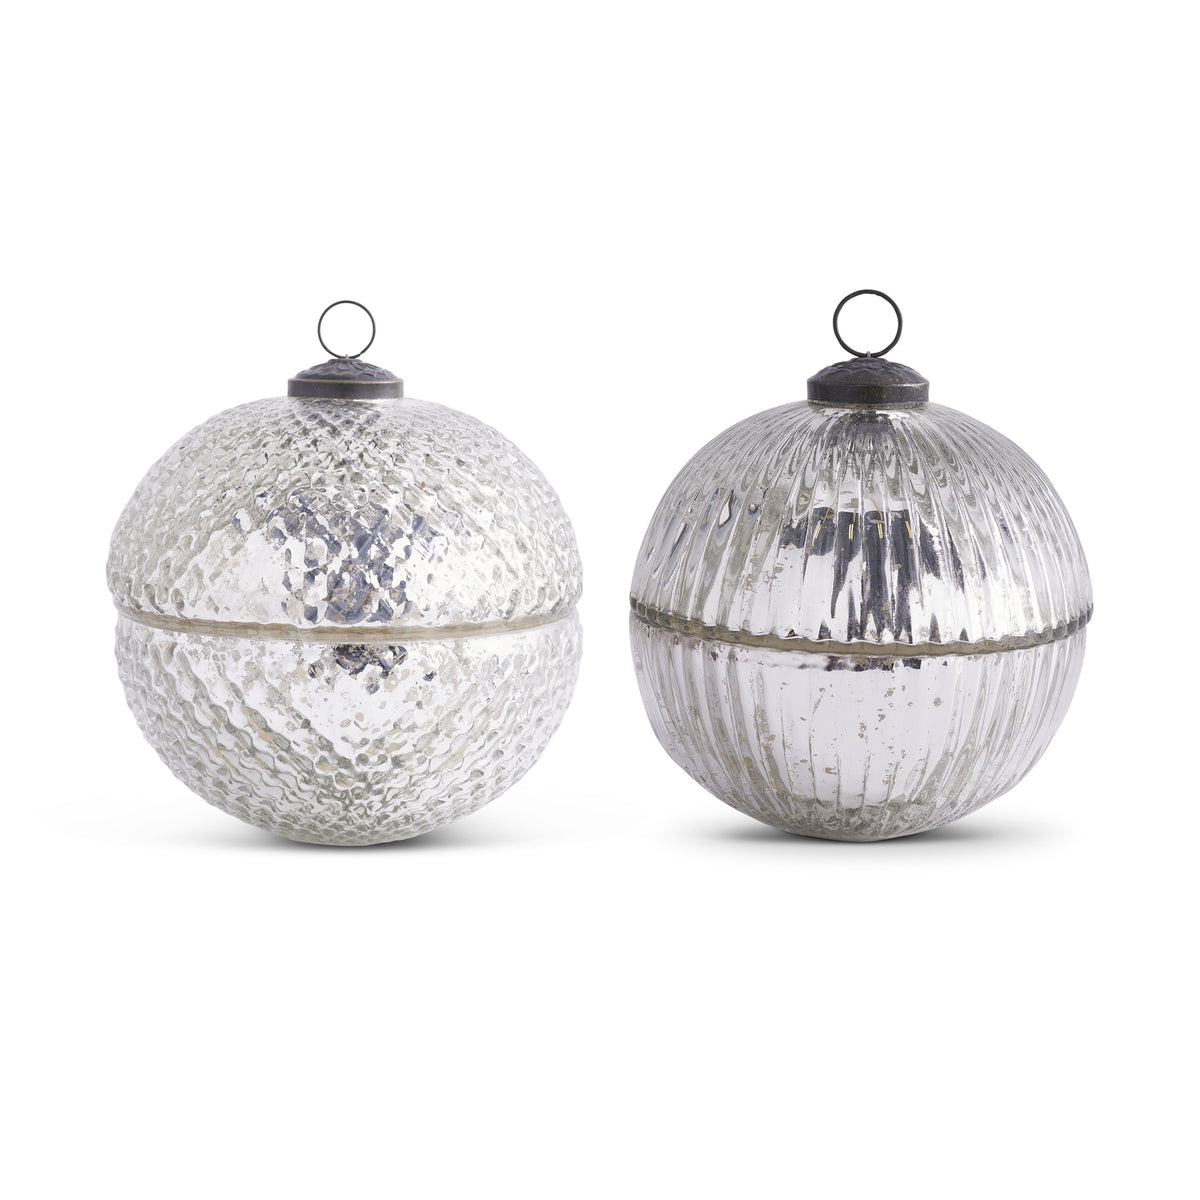 Silver Large Mercury Glass Ornament Candle Set